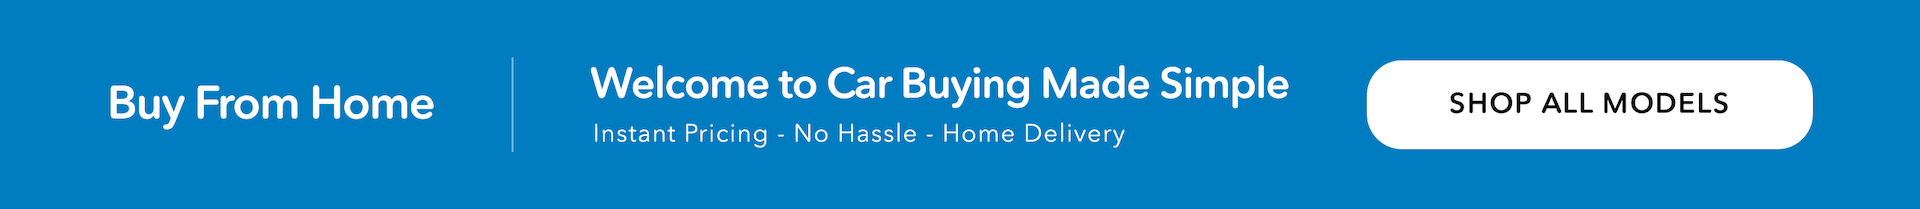 Buy From Home VRP banner lg